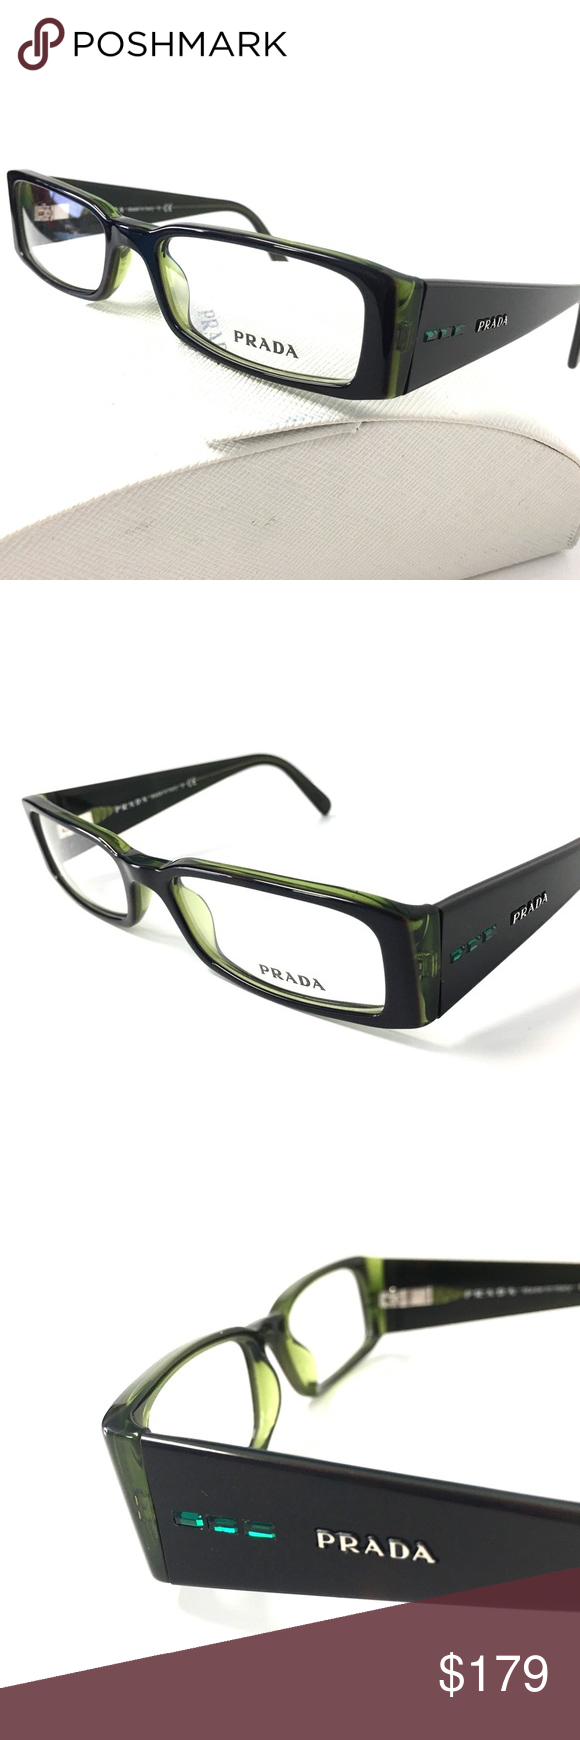 e65d1ee8d0d3 PRADA Eyeglasses Dark Tortoise PRADA Eyeglasses Dark Tortoise with green  Crystals HARD TO FIND DISCONTINUED FRAME!!!!!!!! Size: 49-16-135✋️  Guarantee 100% ...